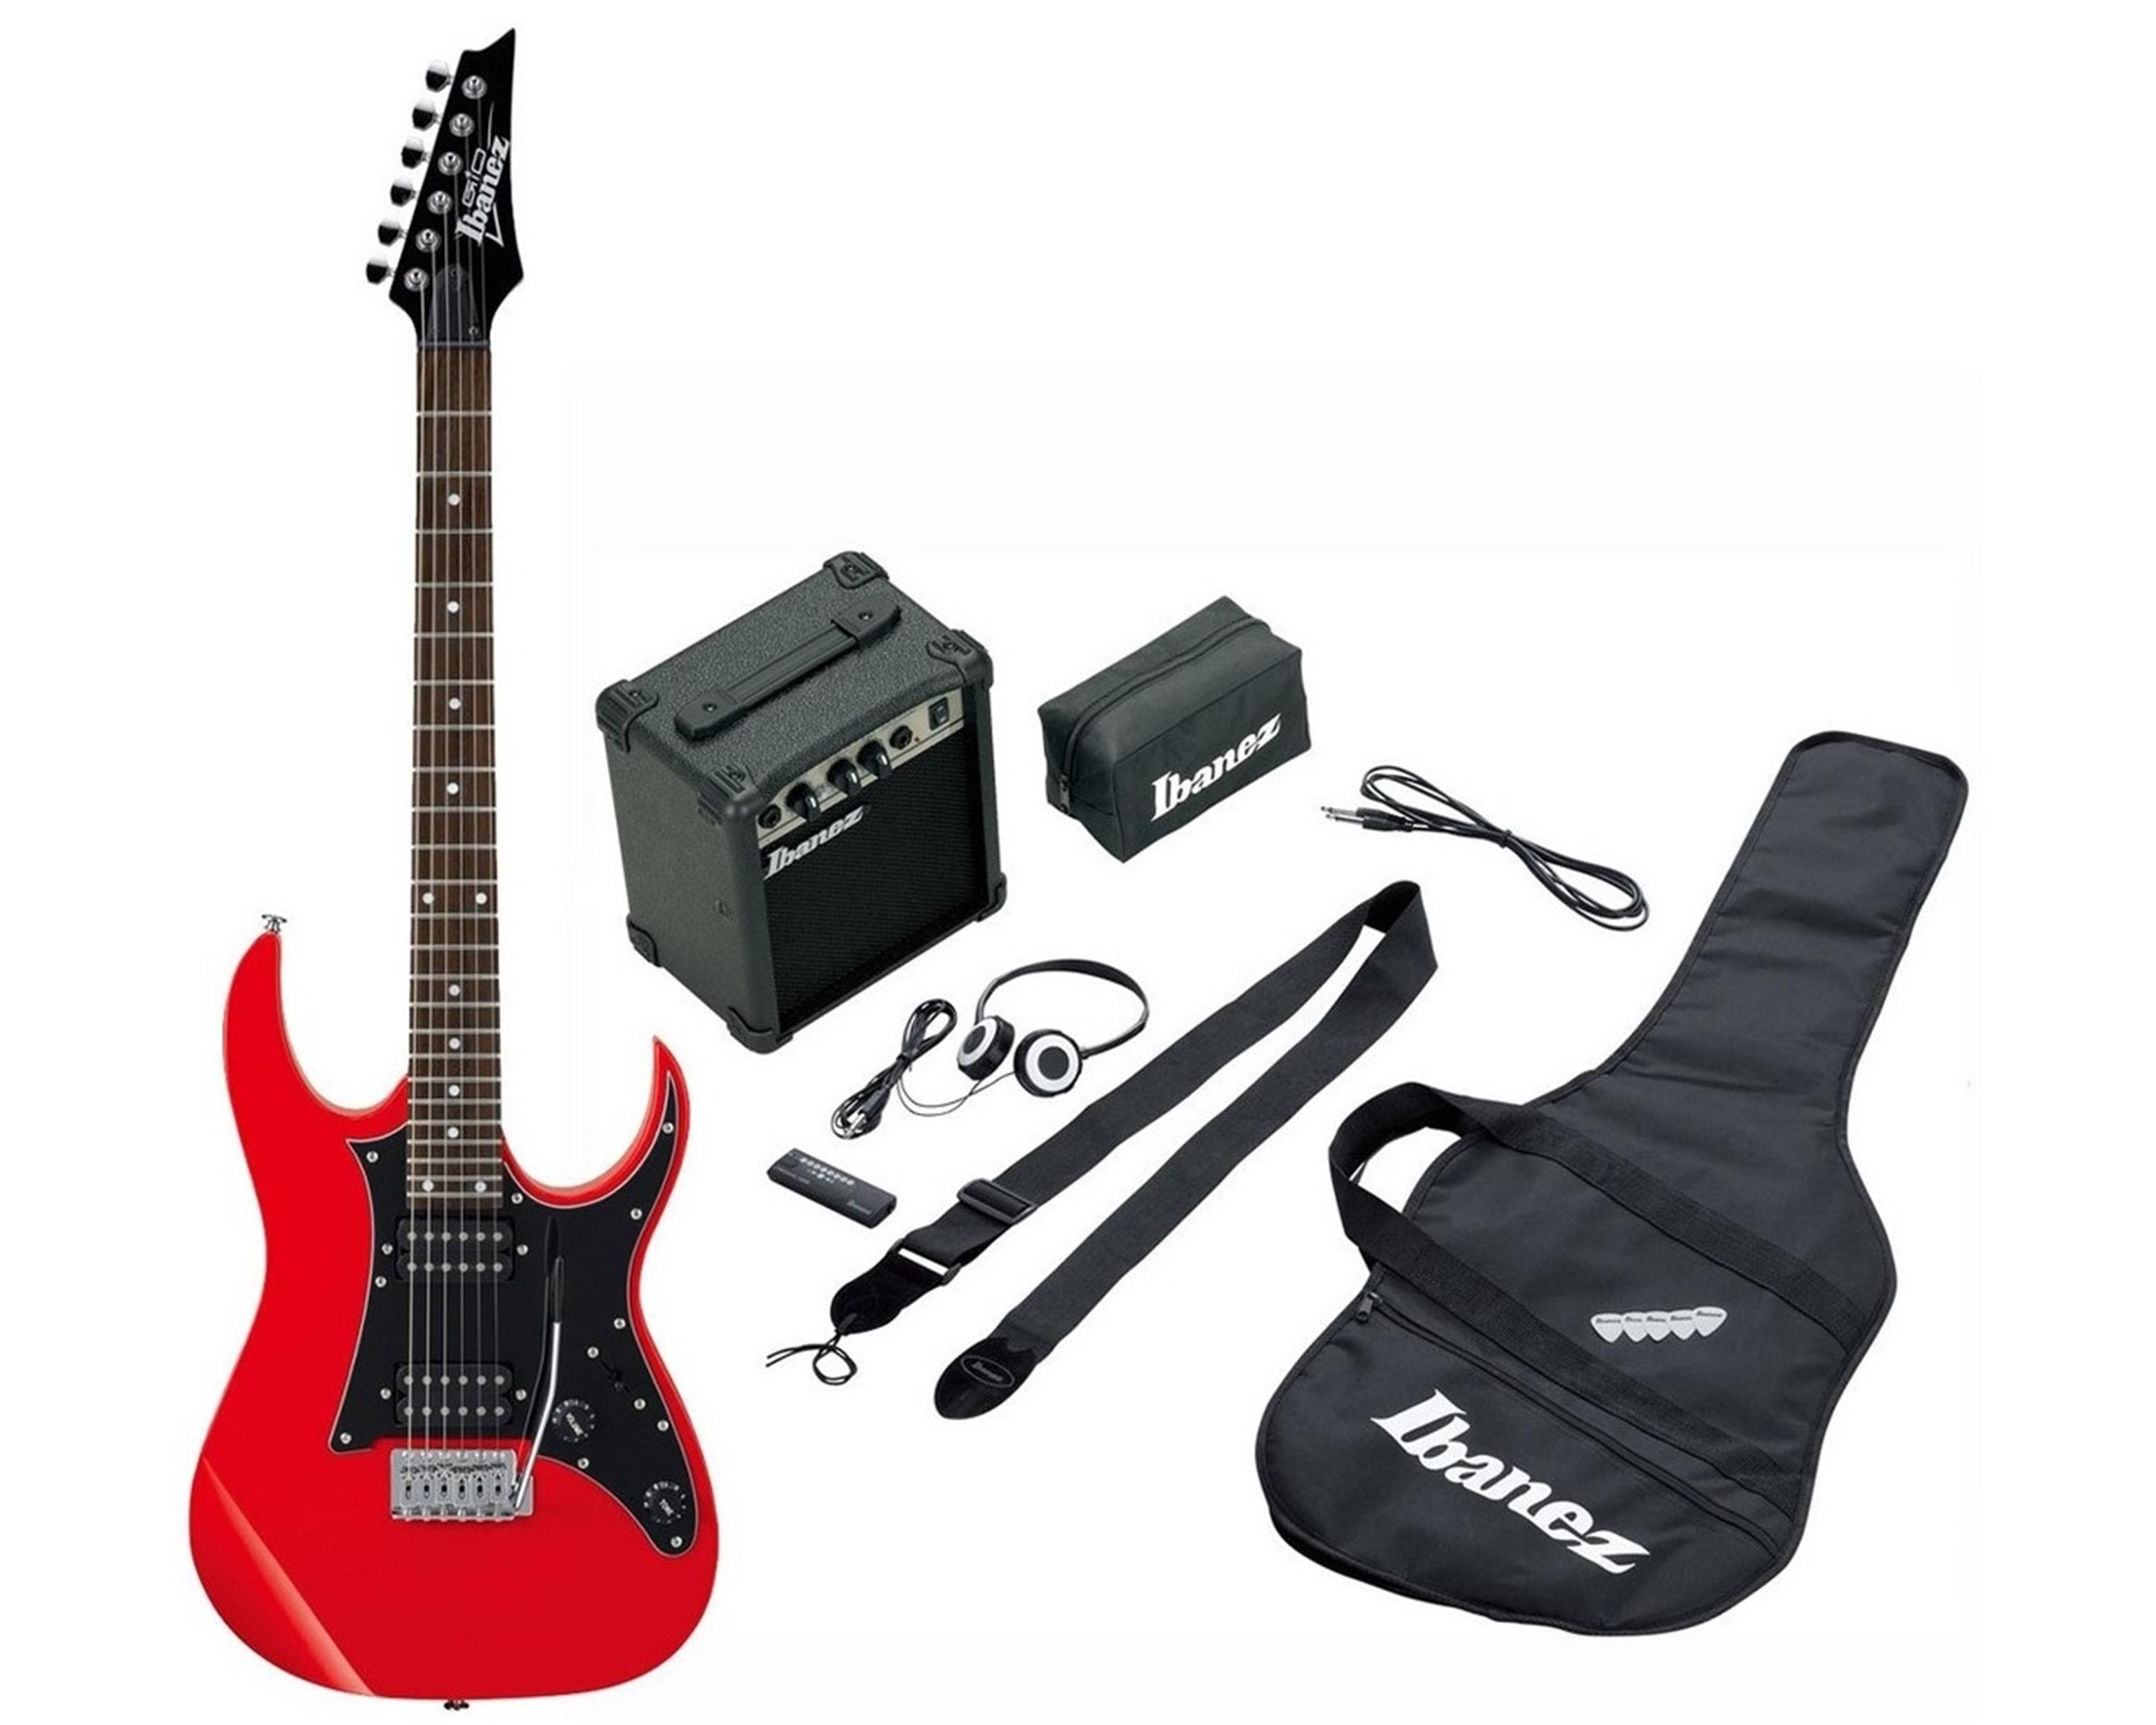 IBANEZ IJRG200-RD Jumpstart - red